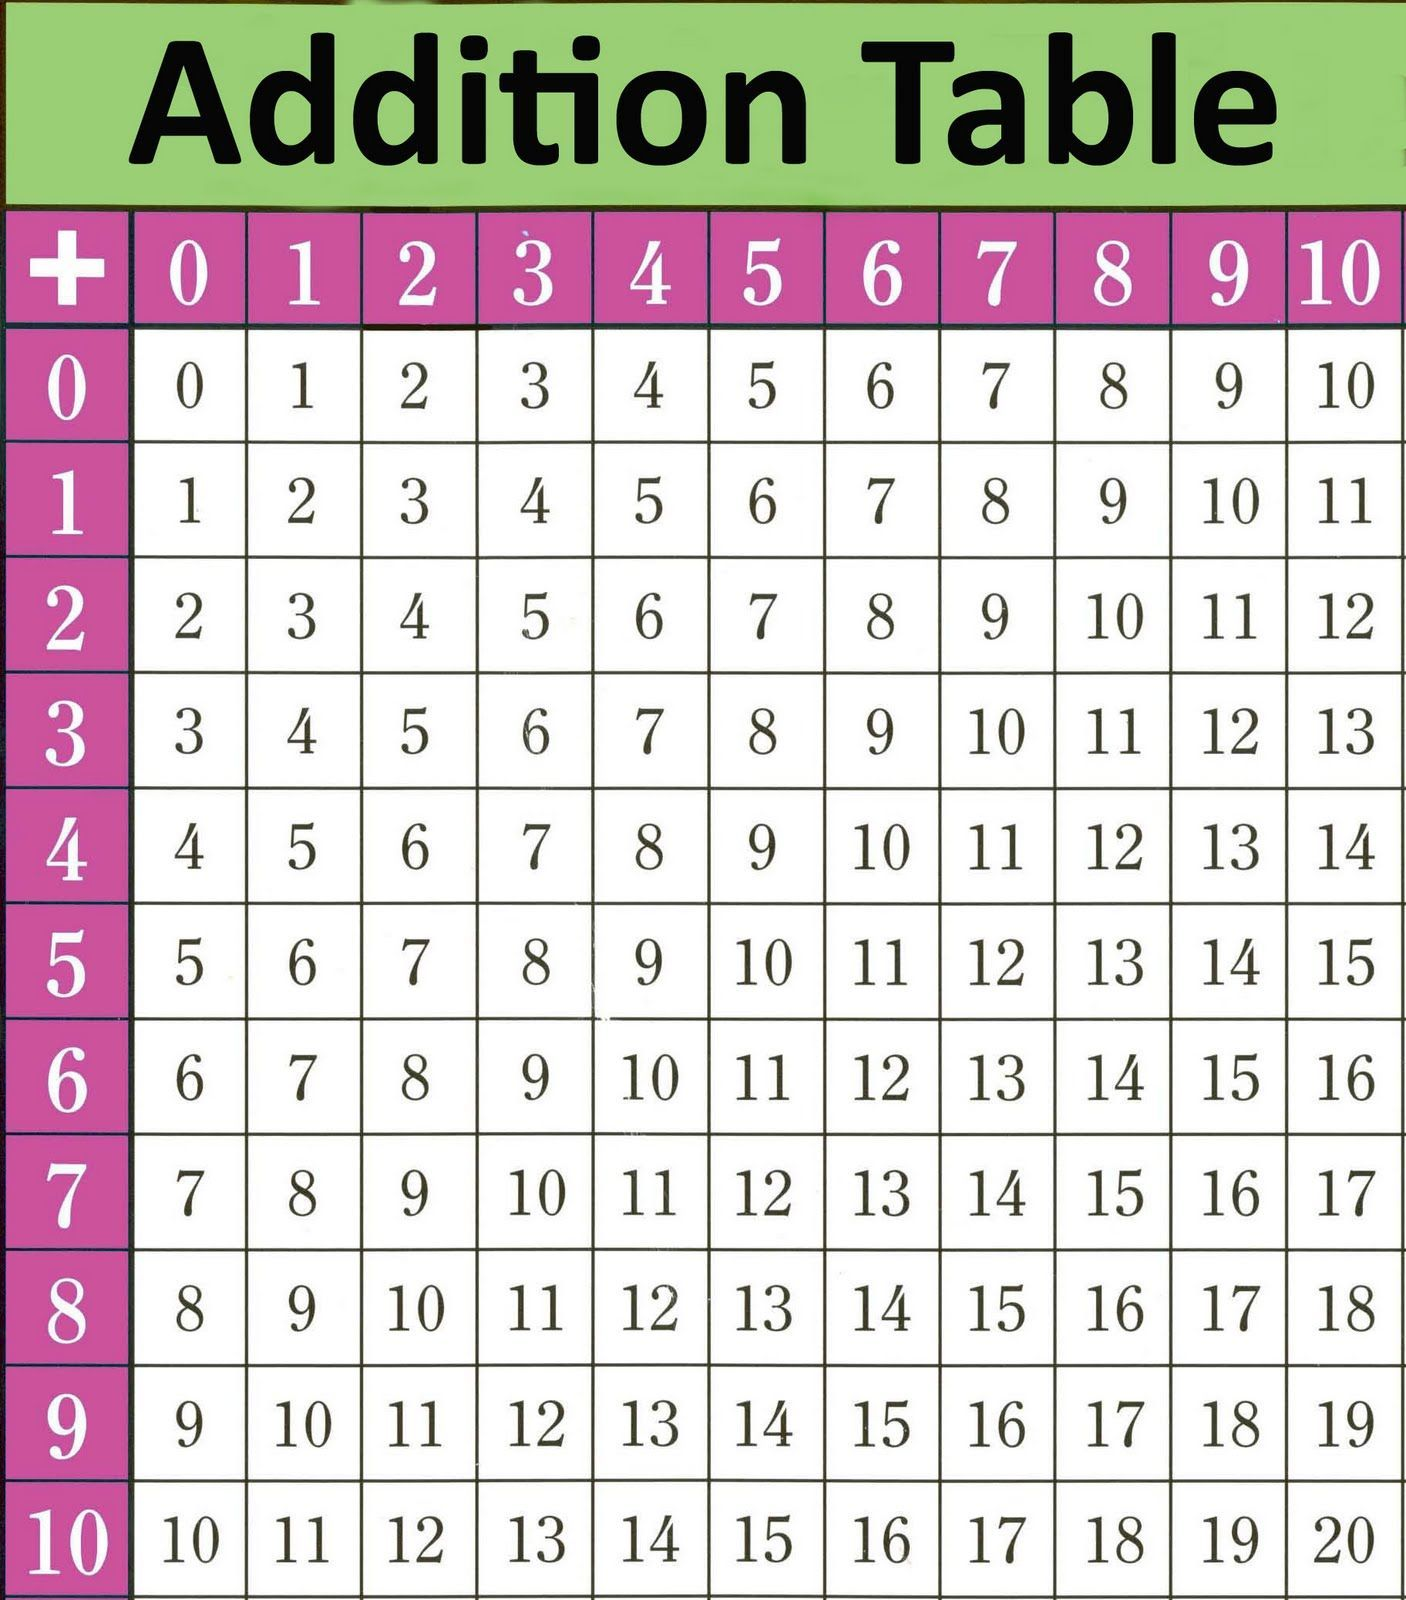 image result for addition table 1 to 12 addition table math tables addition chart school. Black Bedroom Furniture Sets. Home Design Ideas